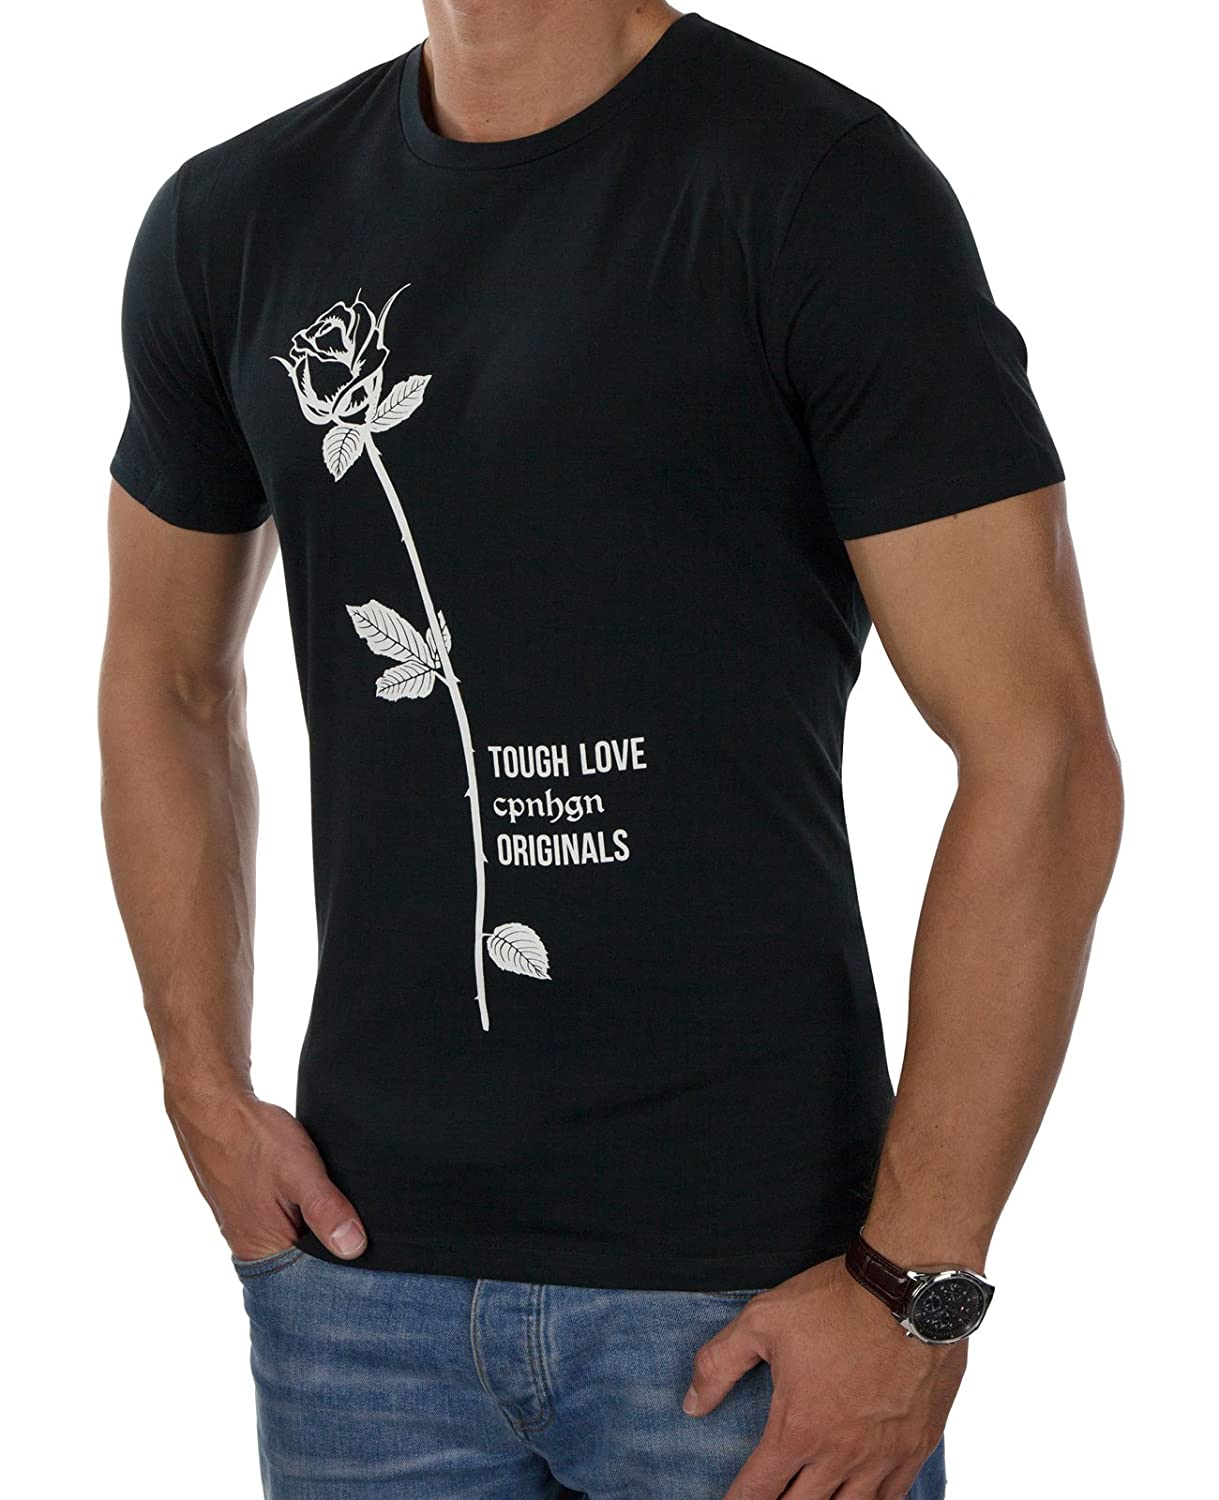 JACK & JONES Herren T-Shirt jorGRAMMER Tee Print Rose Rundhals Regular Fit:  Amazon.de: Bekleidung